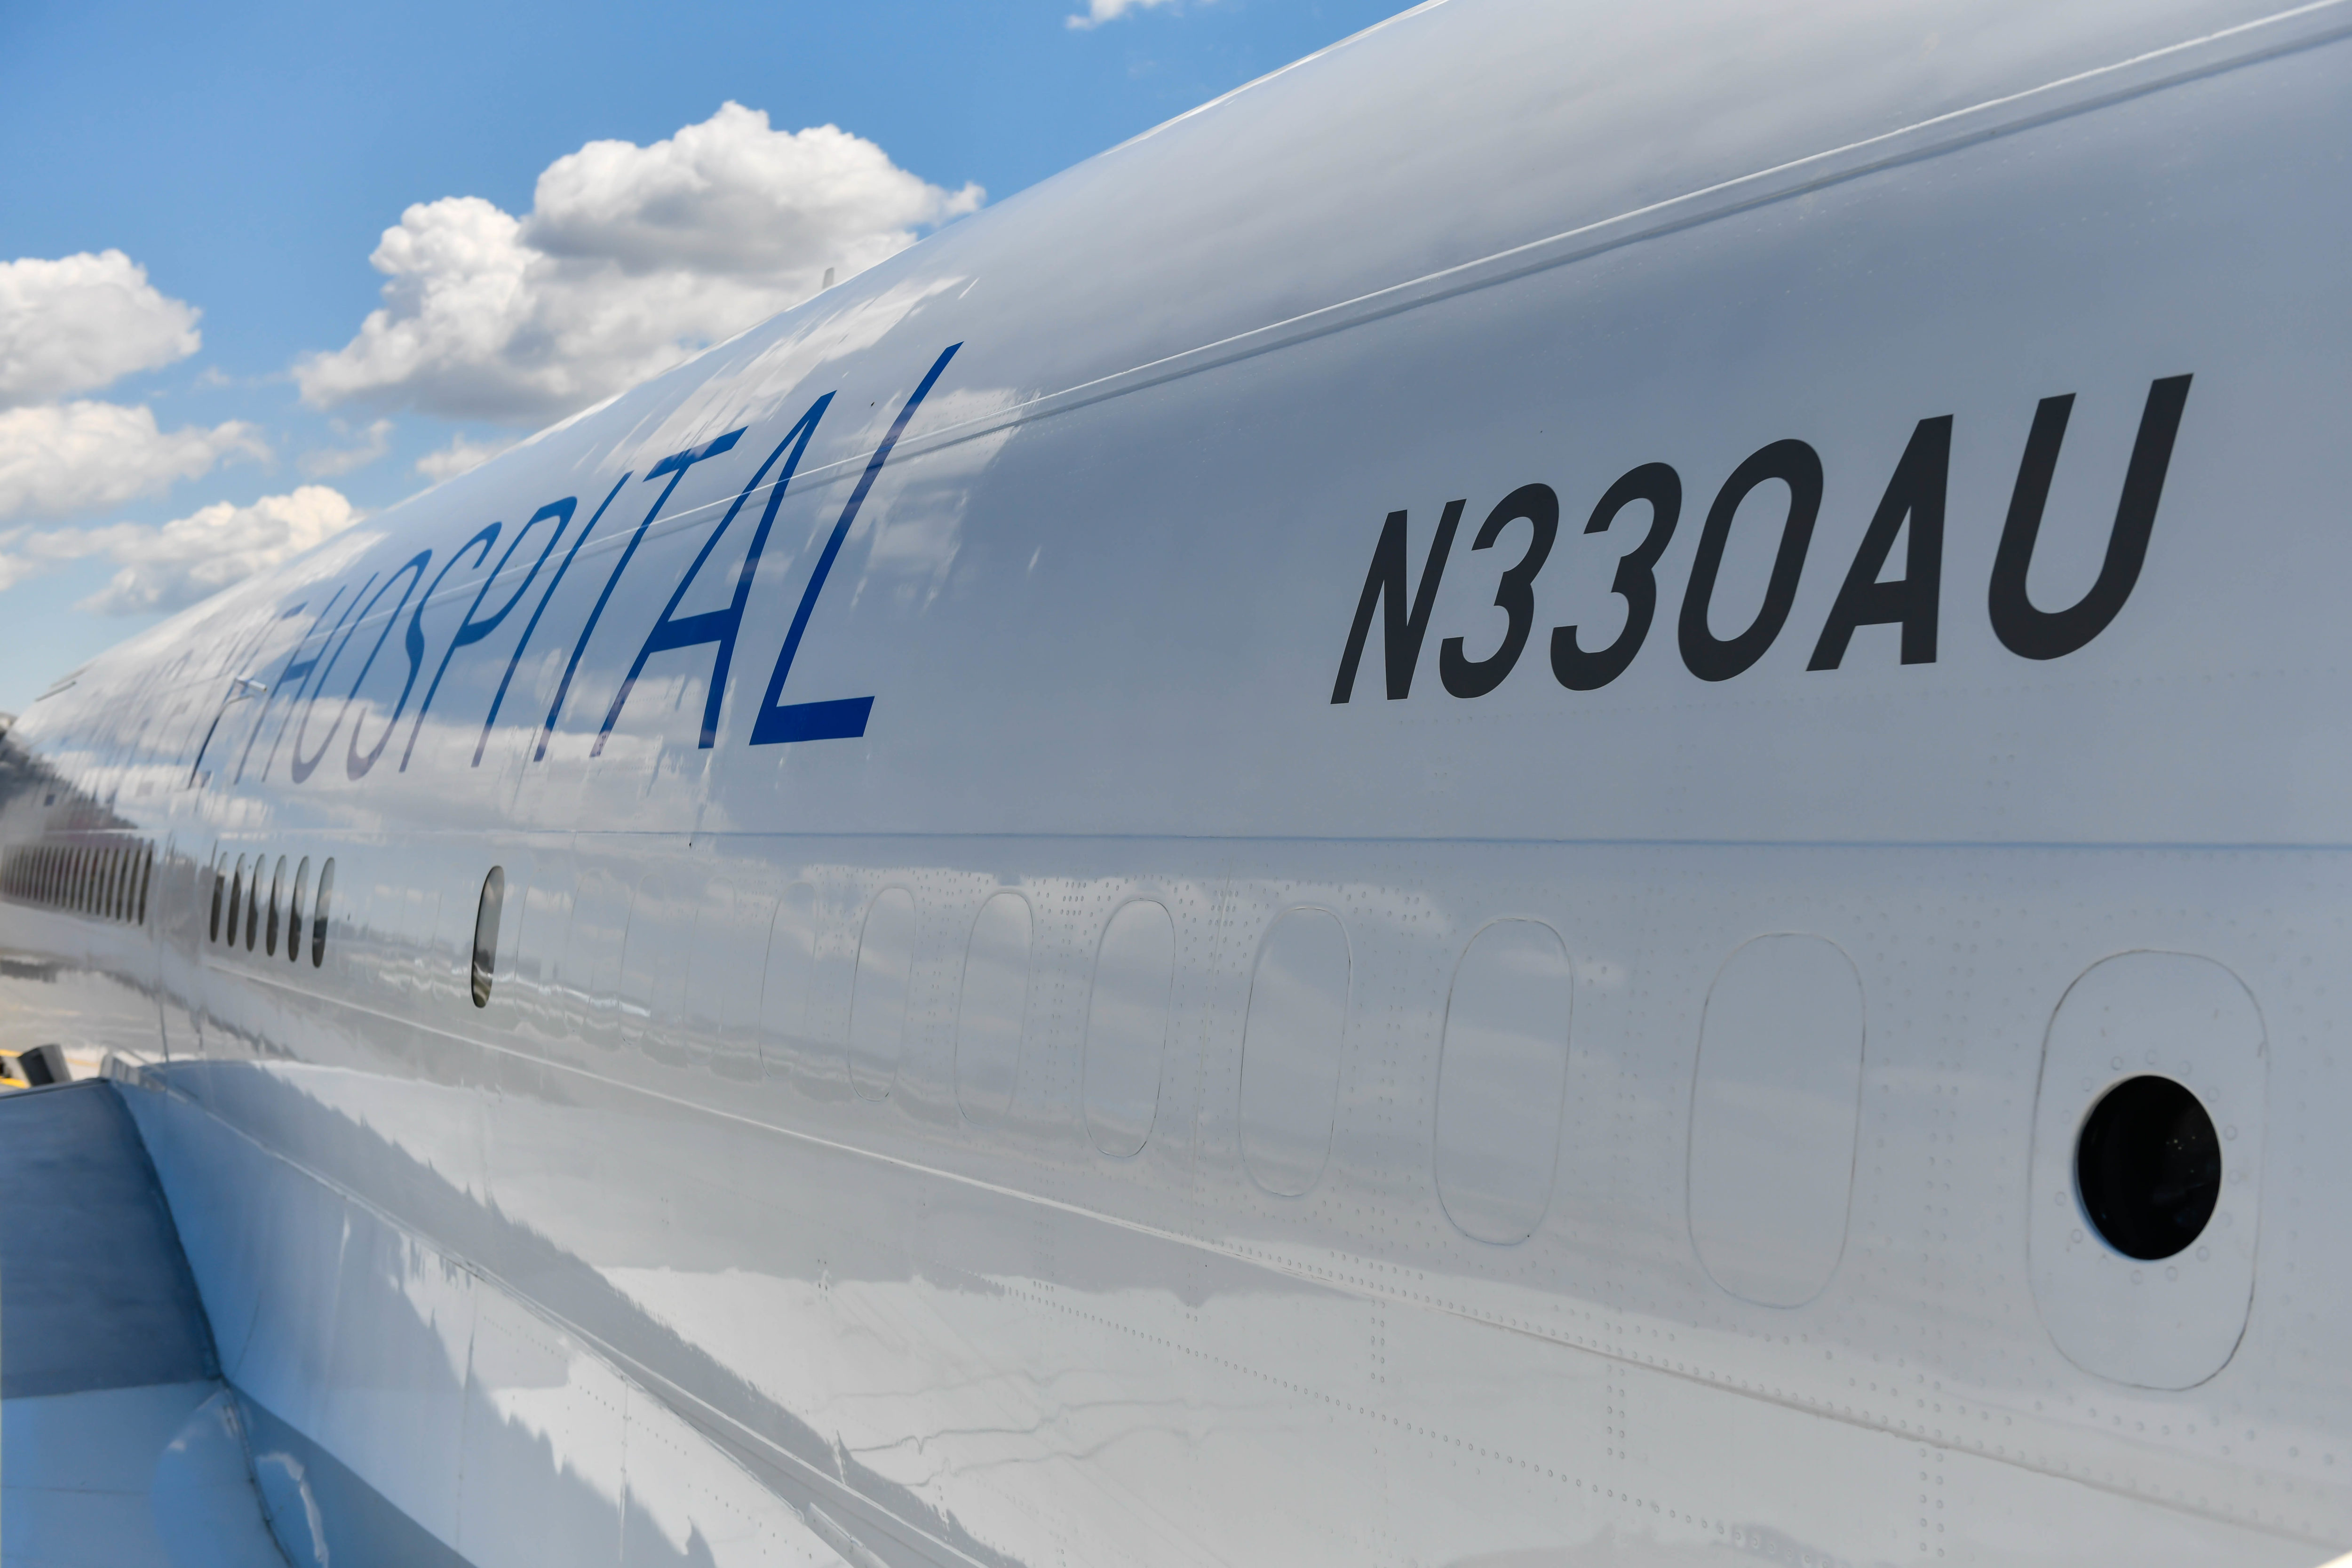 The last two letters in the jet's registration is a tribute to FlightSafety International founder A.L.